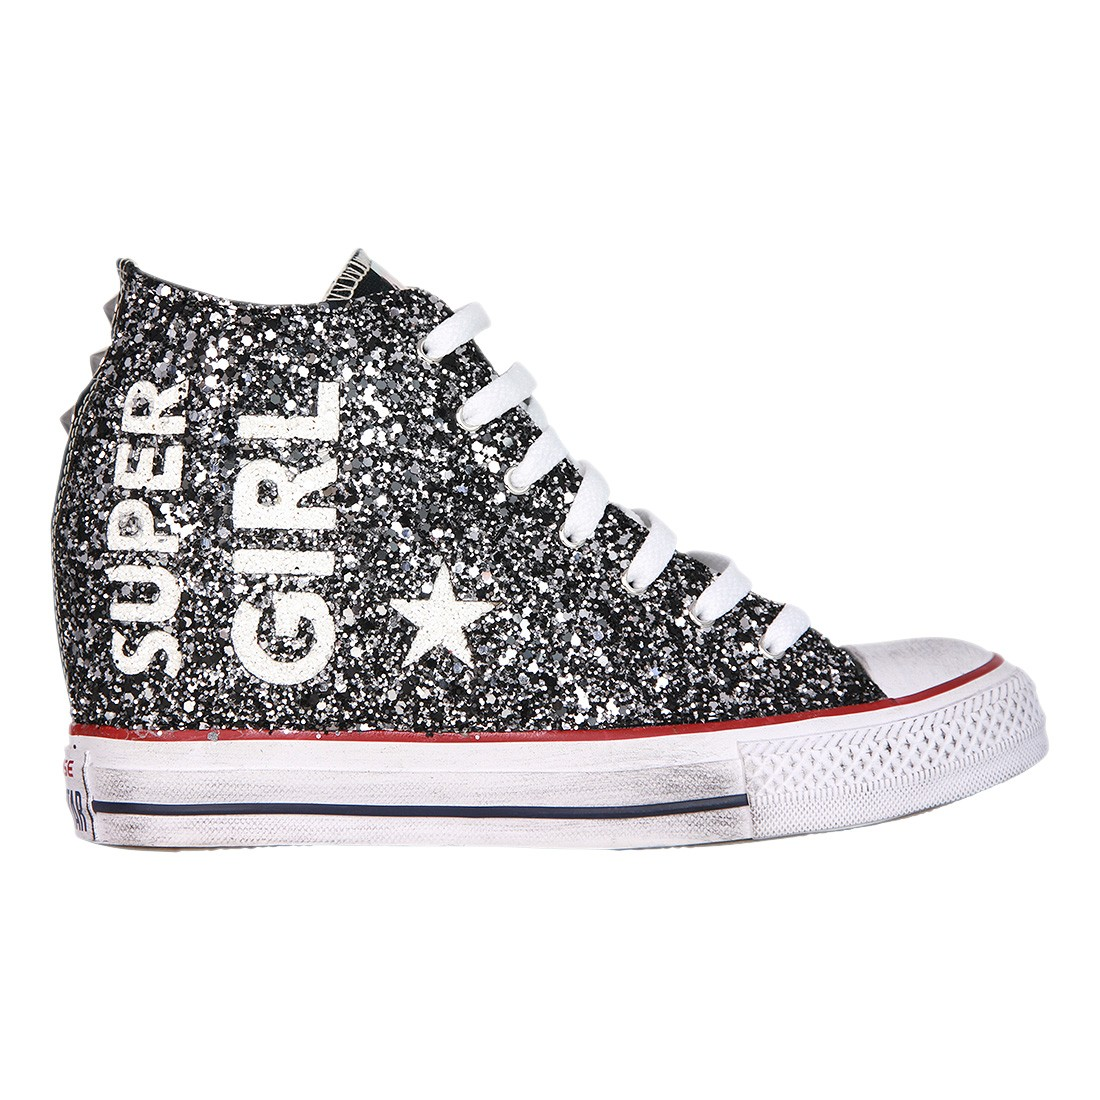 2all star converse tacco